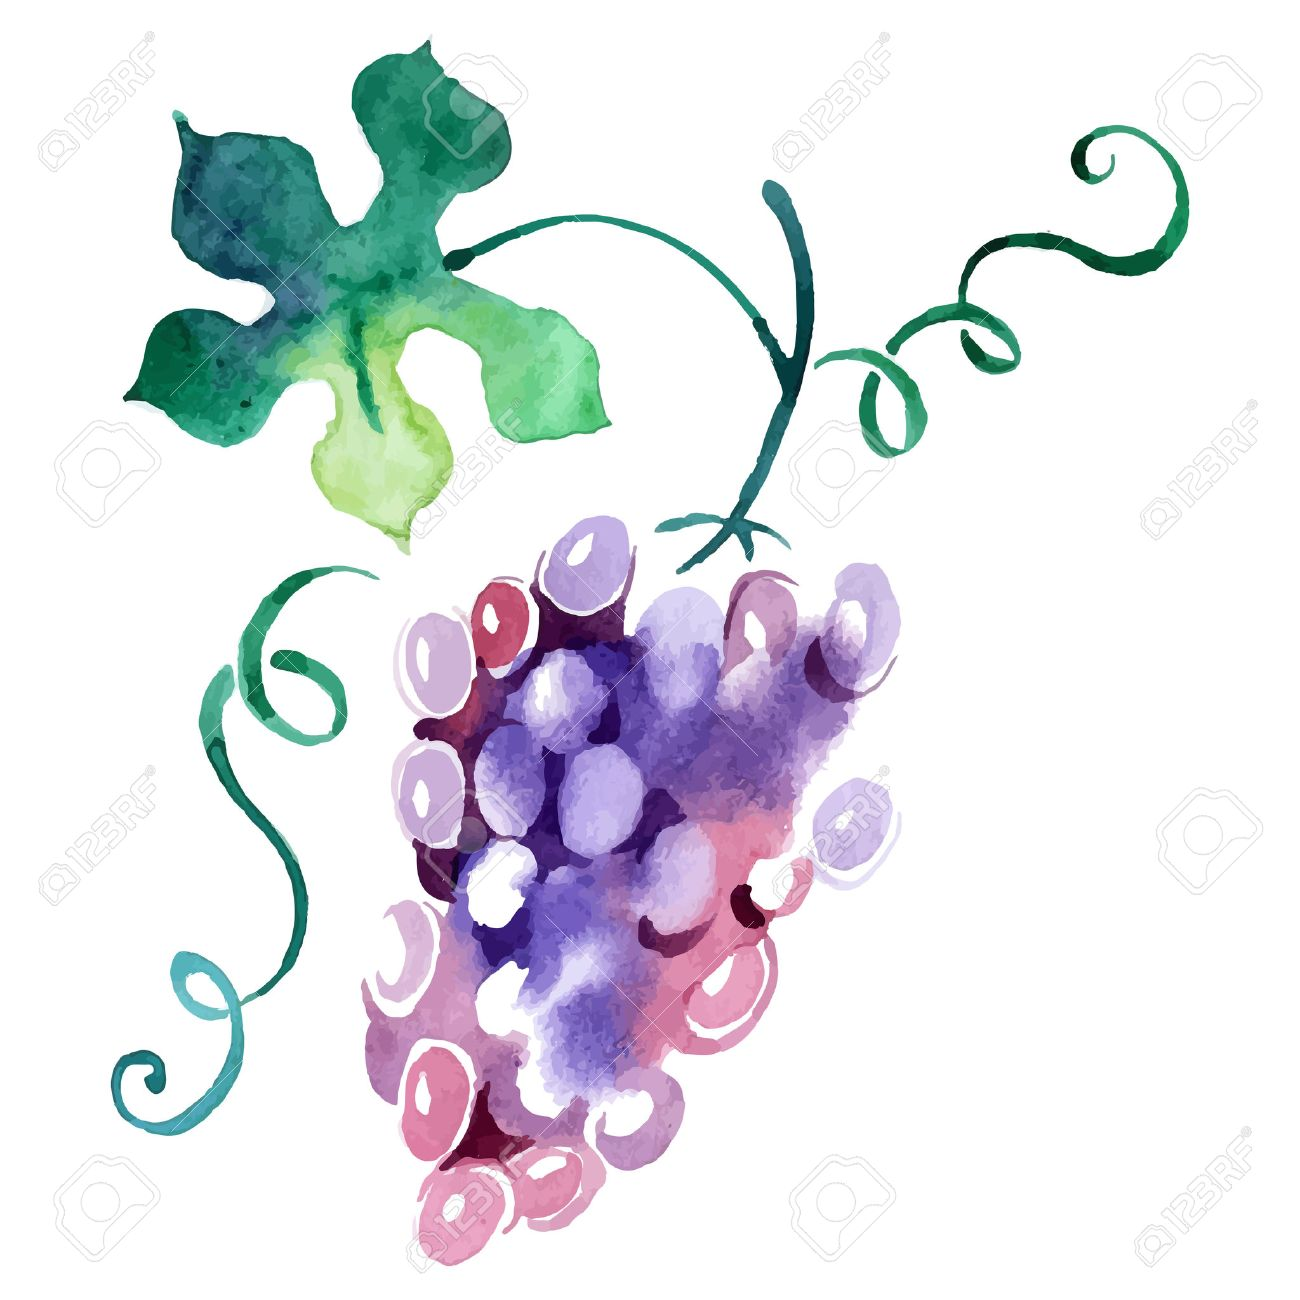 hight resolution of 1300x1300 11 439 vineyard stock illustrations cliparts and royalty free